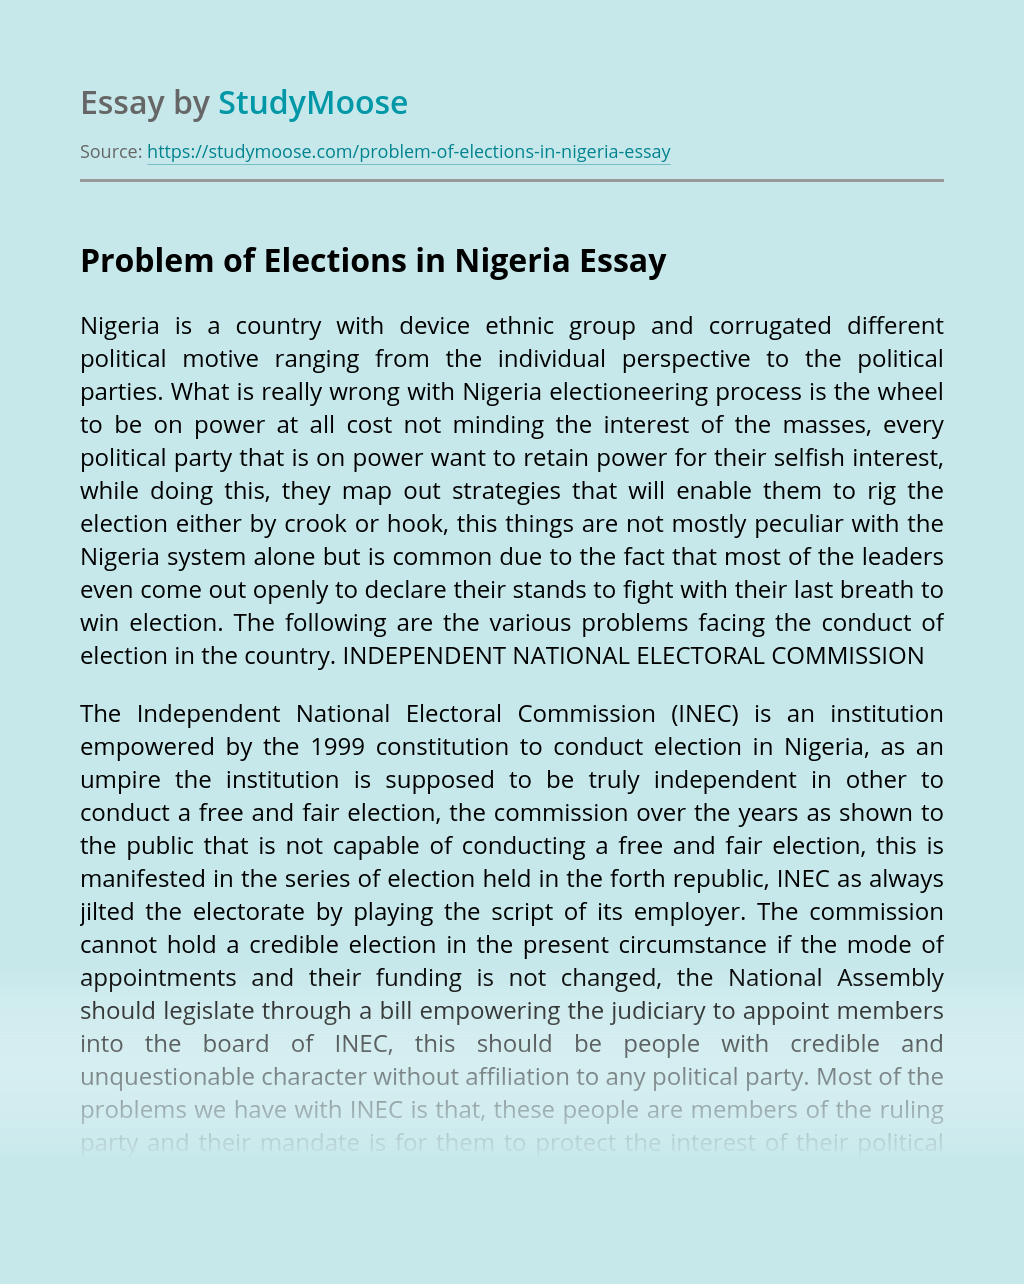 Problem of Elections in Nigeria